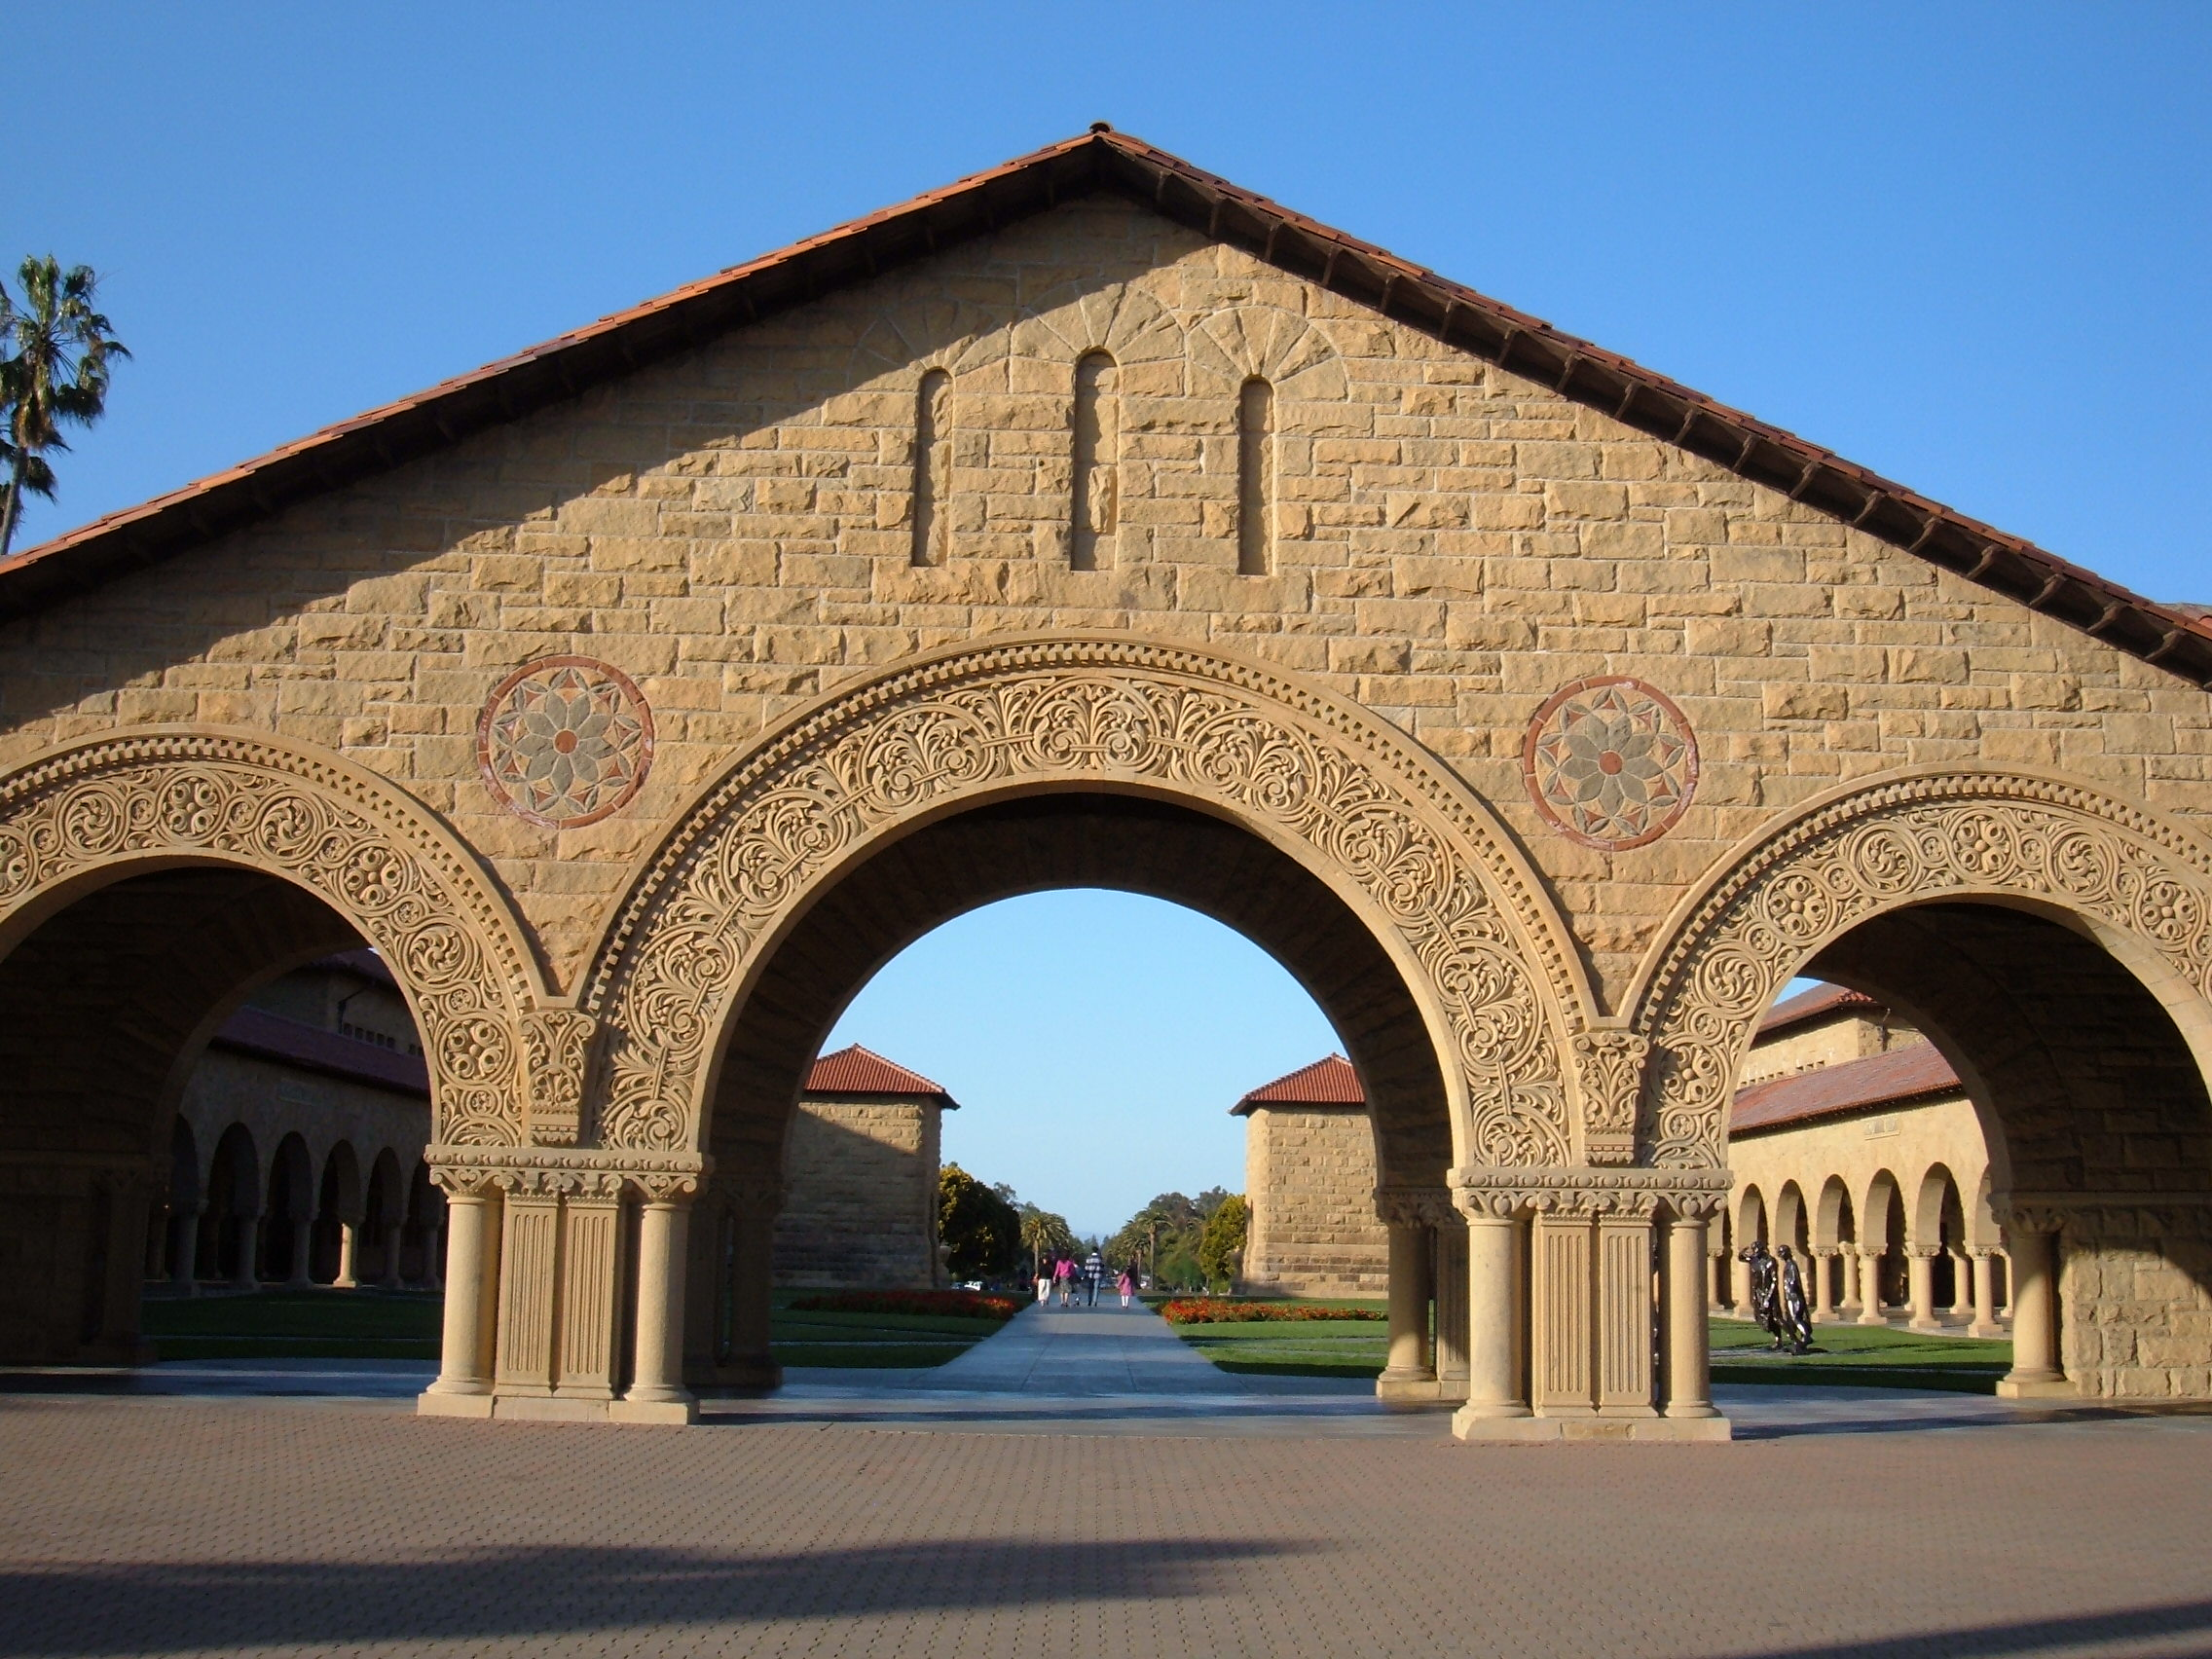 FileStanford University Main Quad western archwayJPG Wikimedia